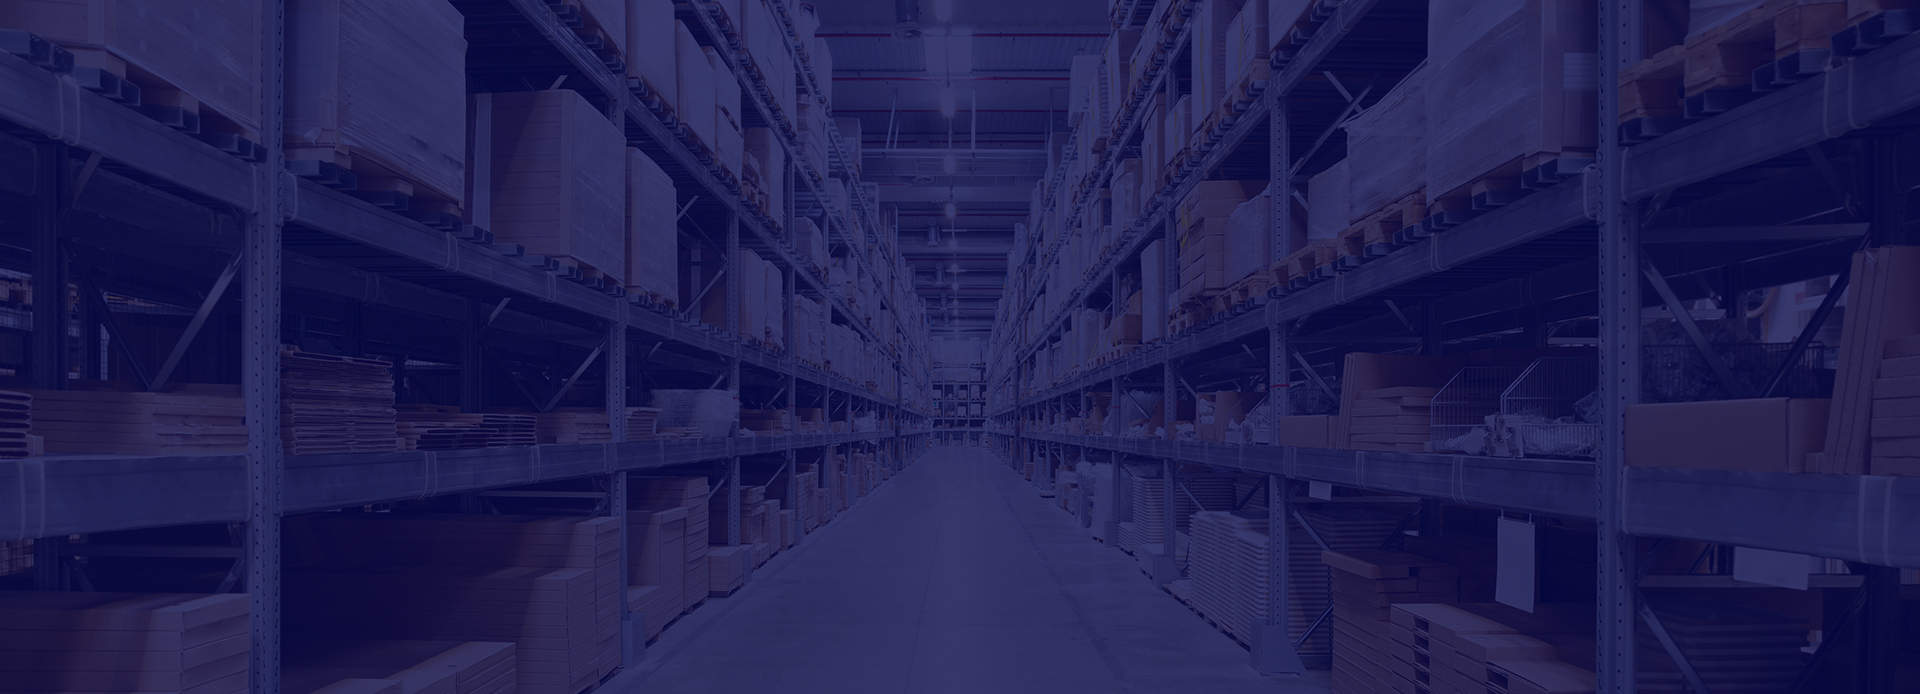 PROBLEMS FACING WHOLESALE DISTRIBUTION PROFESSIONALS